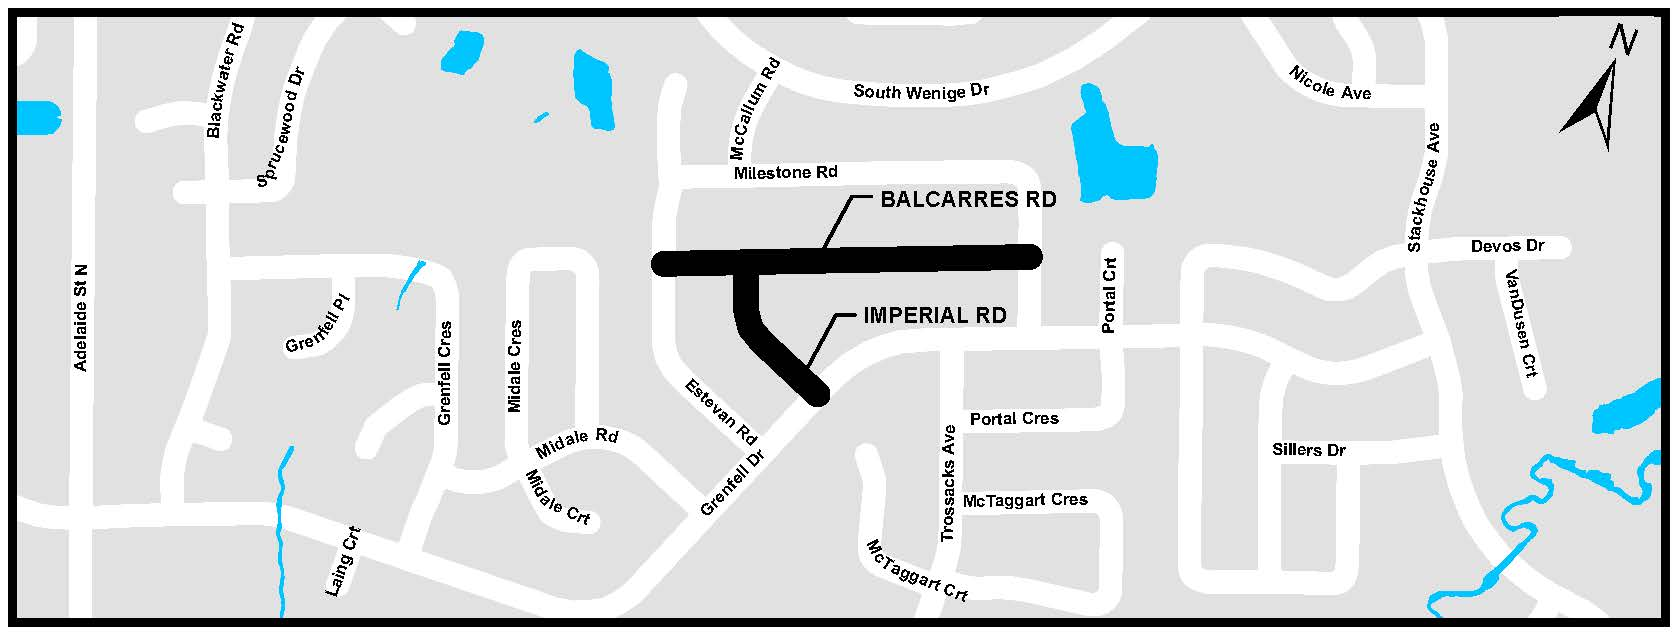 A map of Balcarras Road and Imperial Road. For more information, assistance, or to ask questions, please contact Kyle Fairhurst at kfairhur@london.ca